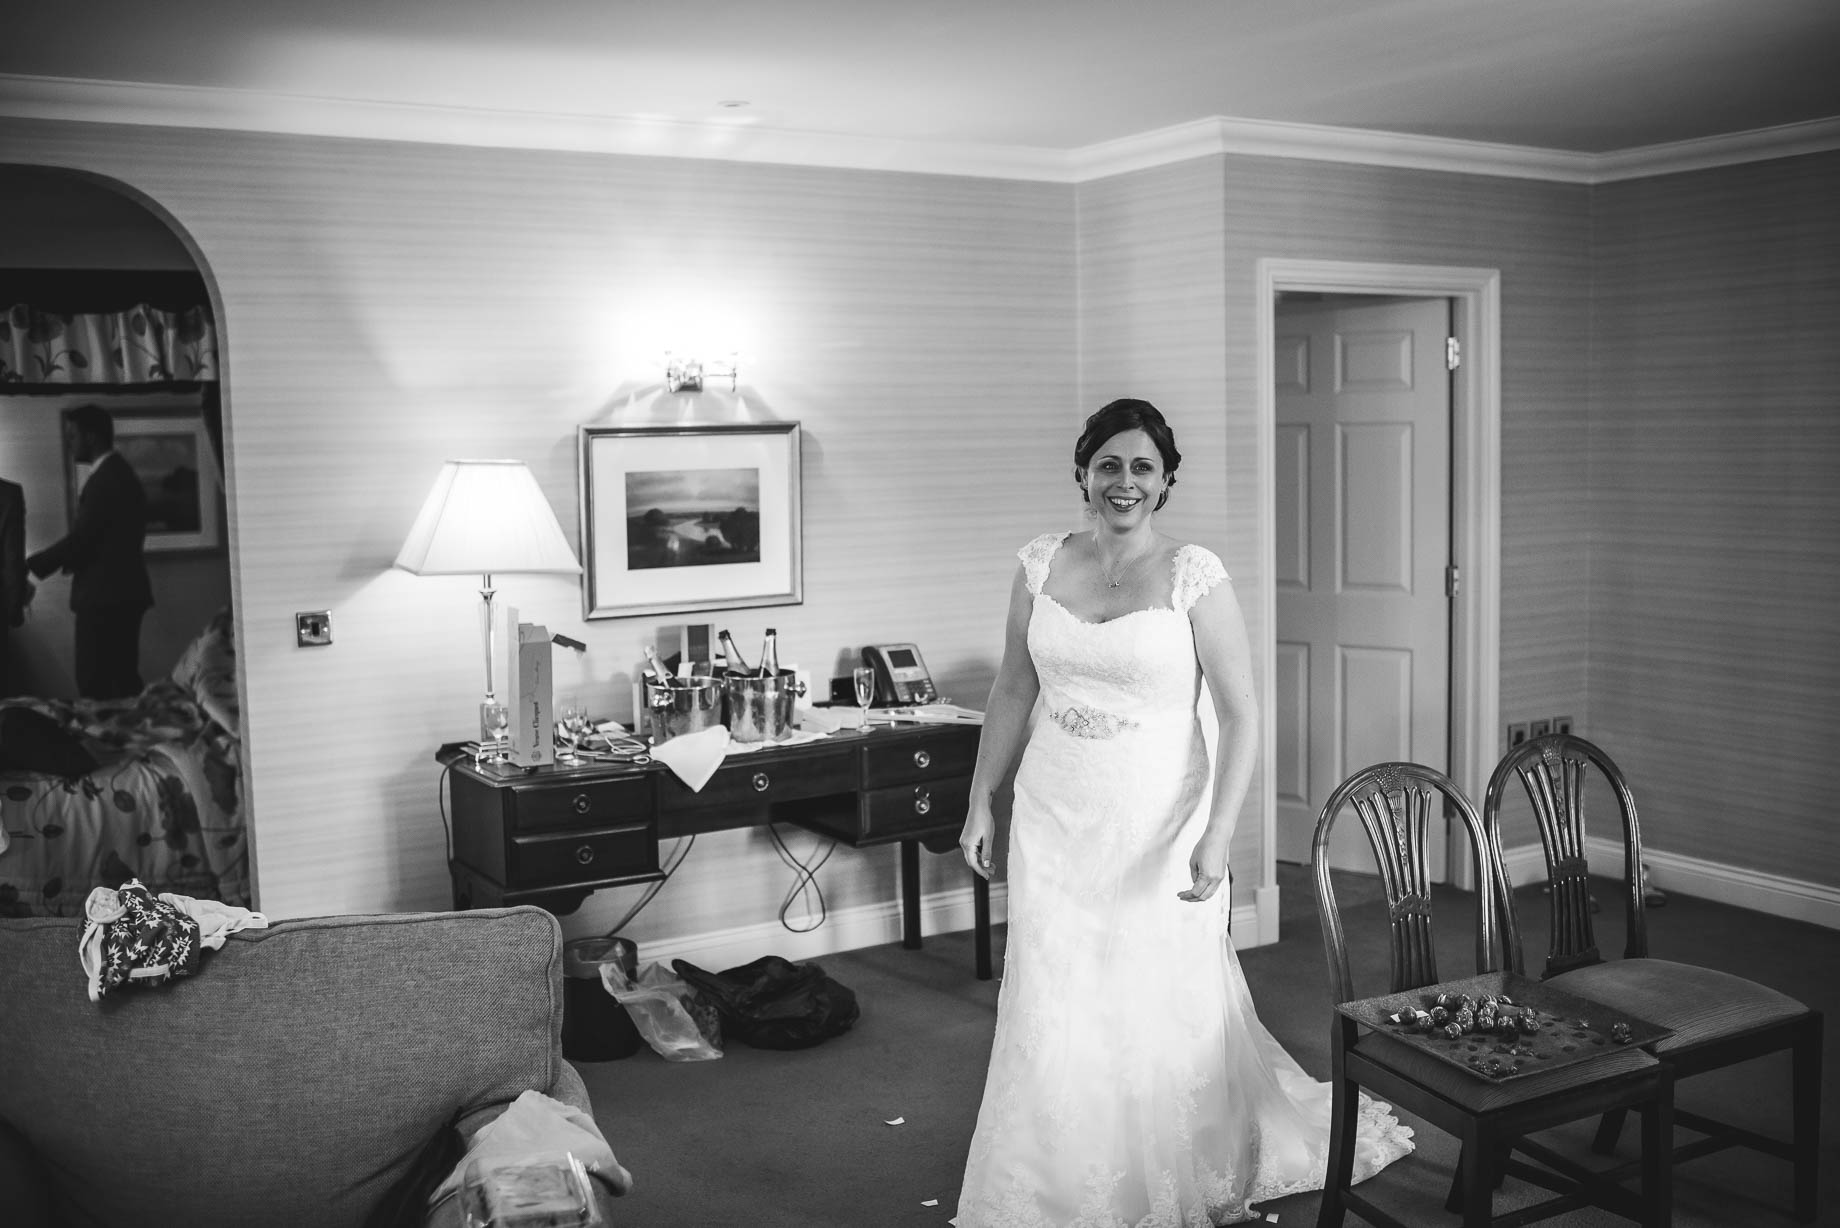 Luton Hoo wedding photography by Guy Collier Photography - Lauren and Gem (50 of 178)